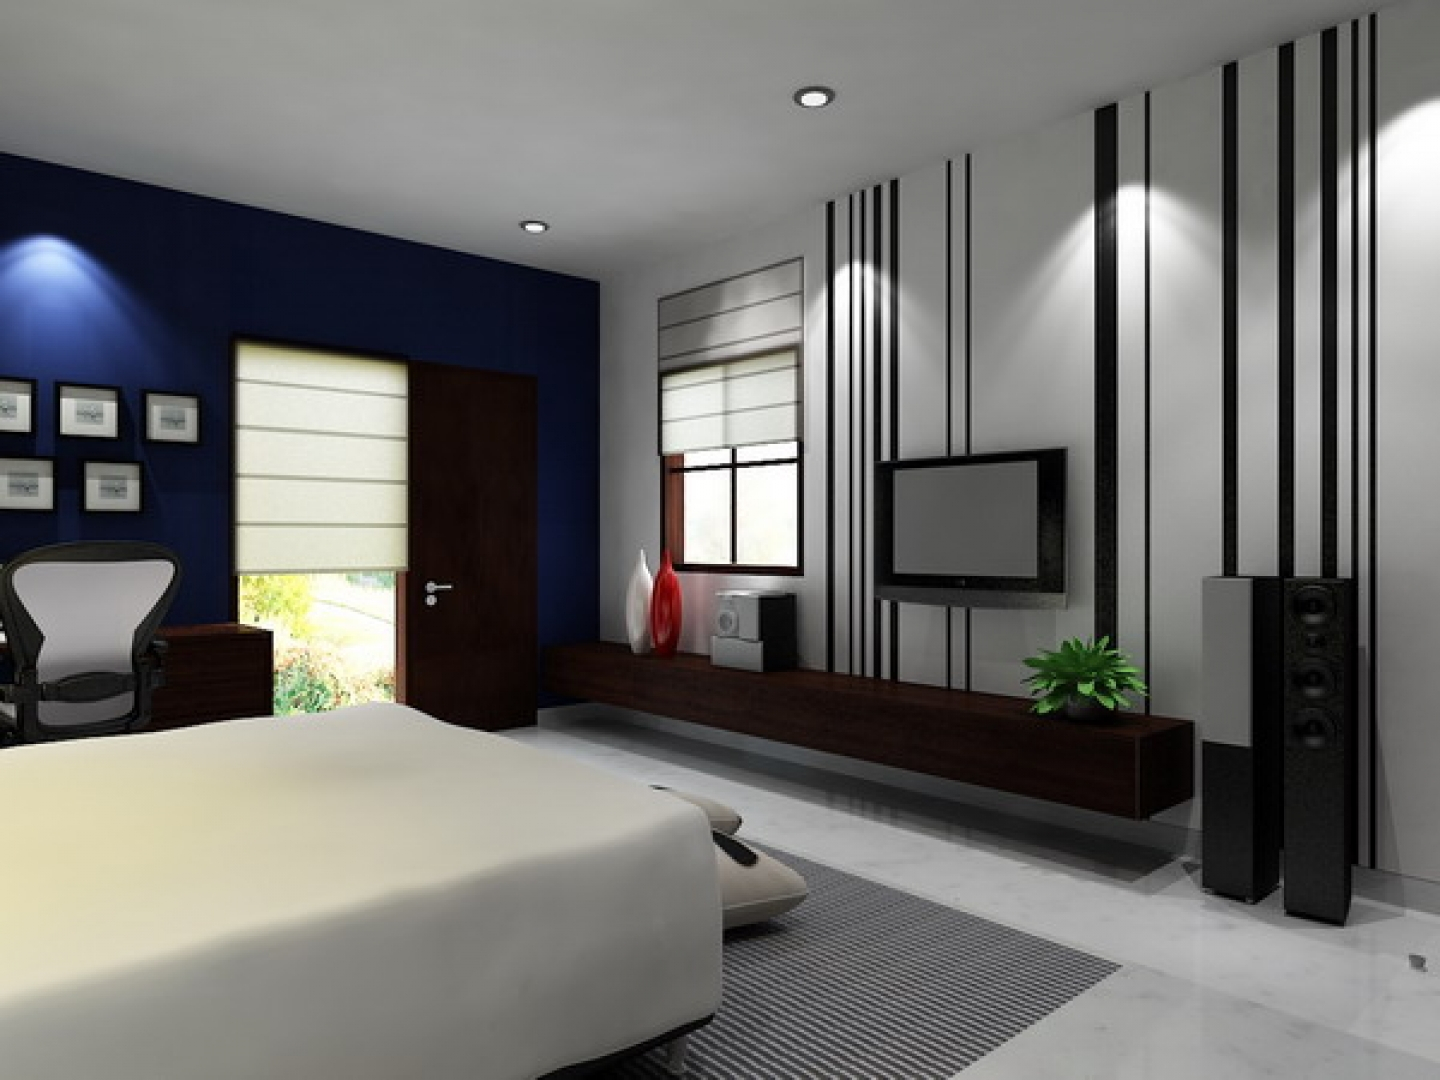 Modern Bedroom Design Ideas For Small Bedrooms with regard to Modern Bedroom Design Ideas